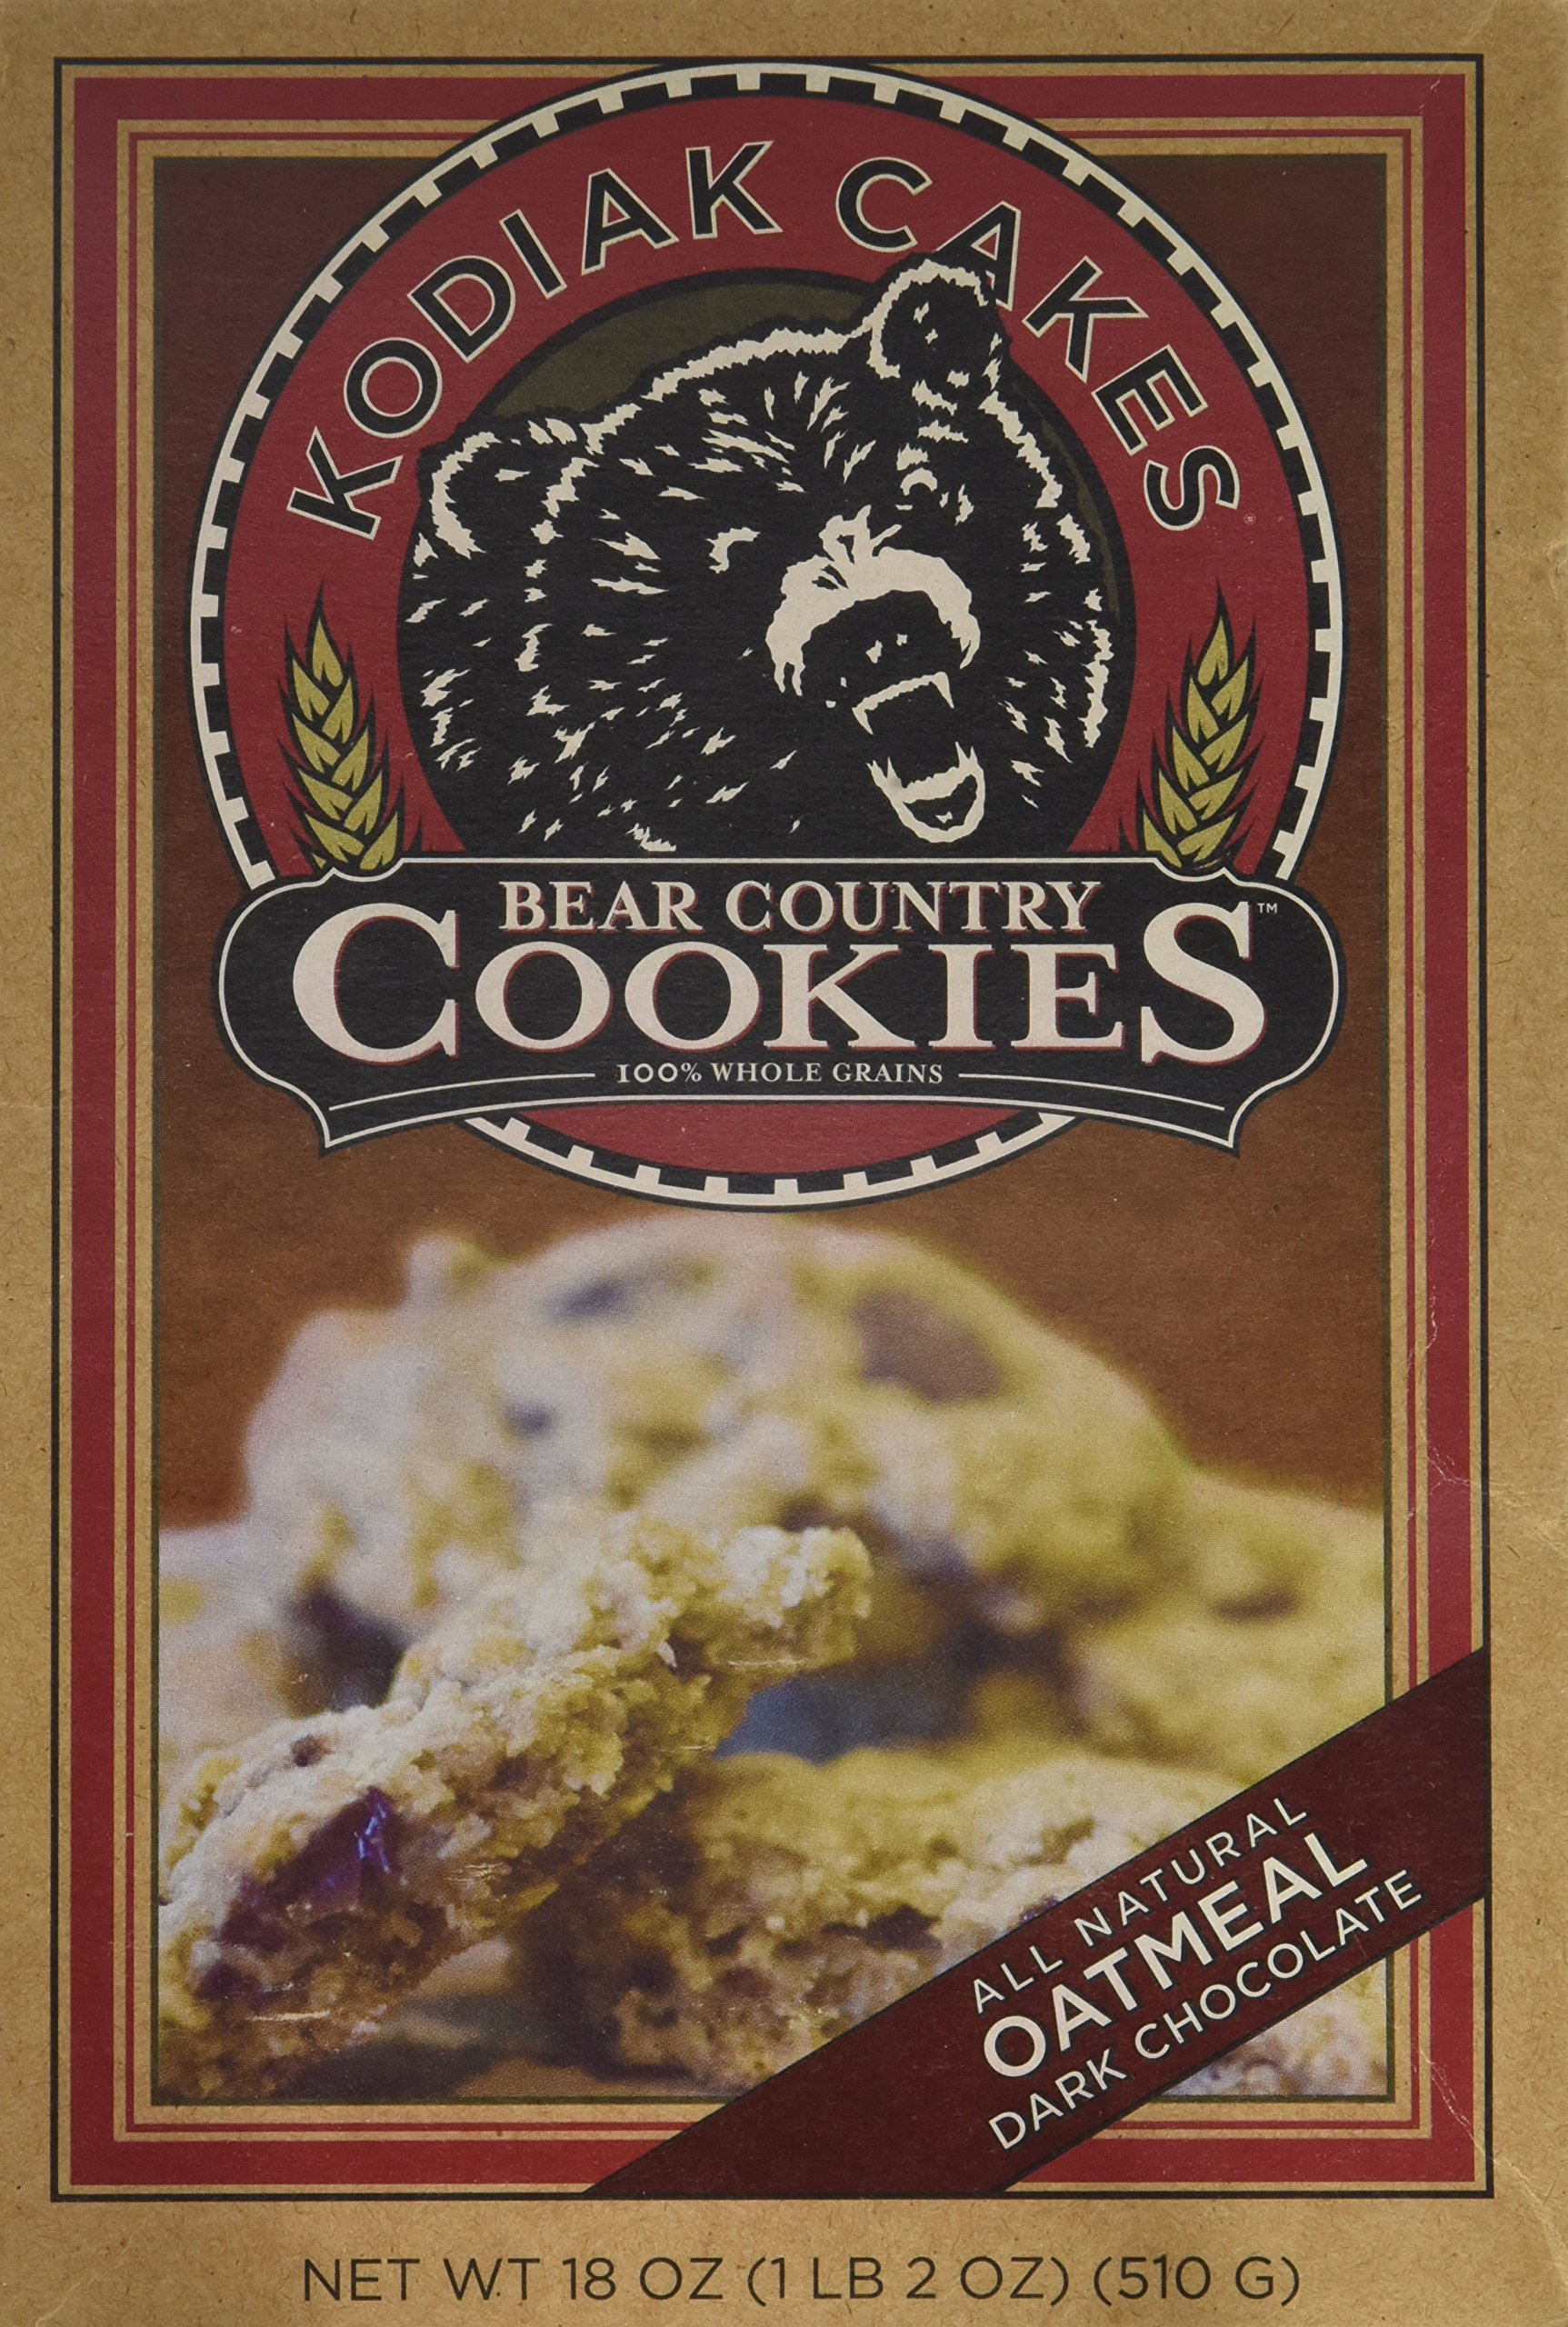 Kodiak Cakes Bear Country Oatmeal Dark Chocolate Cookie Mix, 18 oz